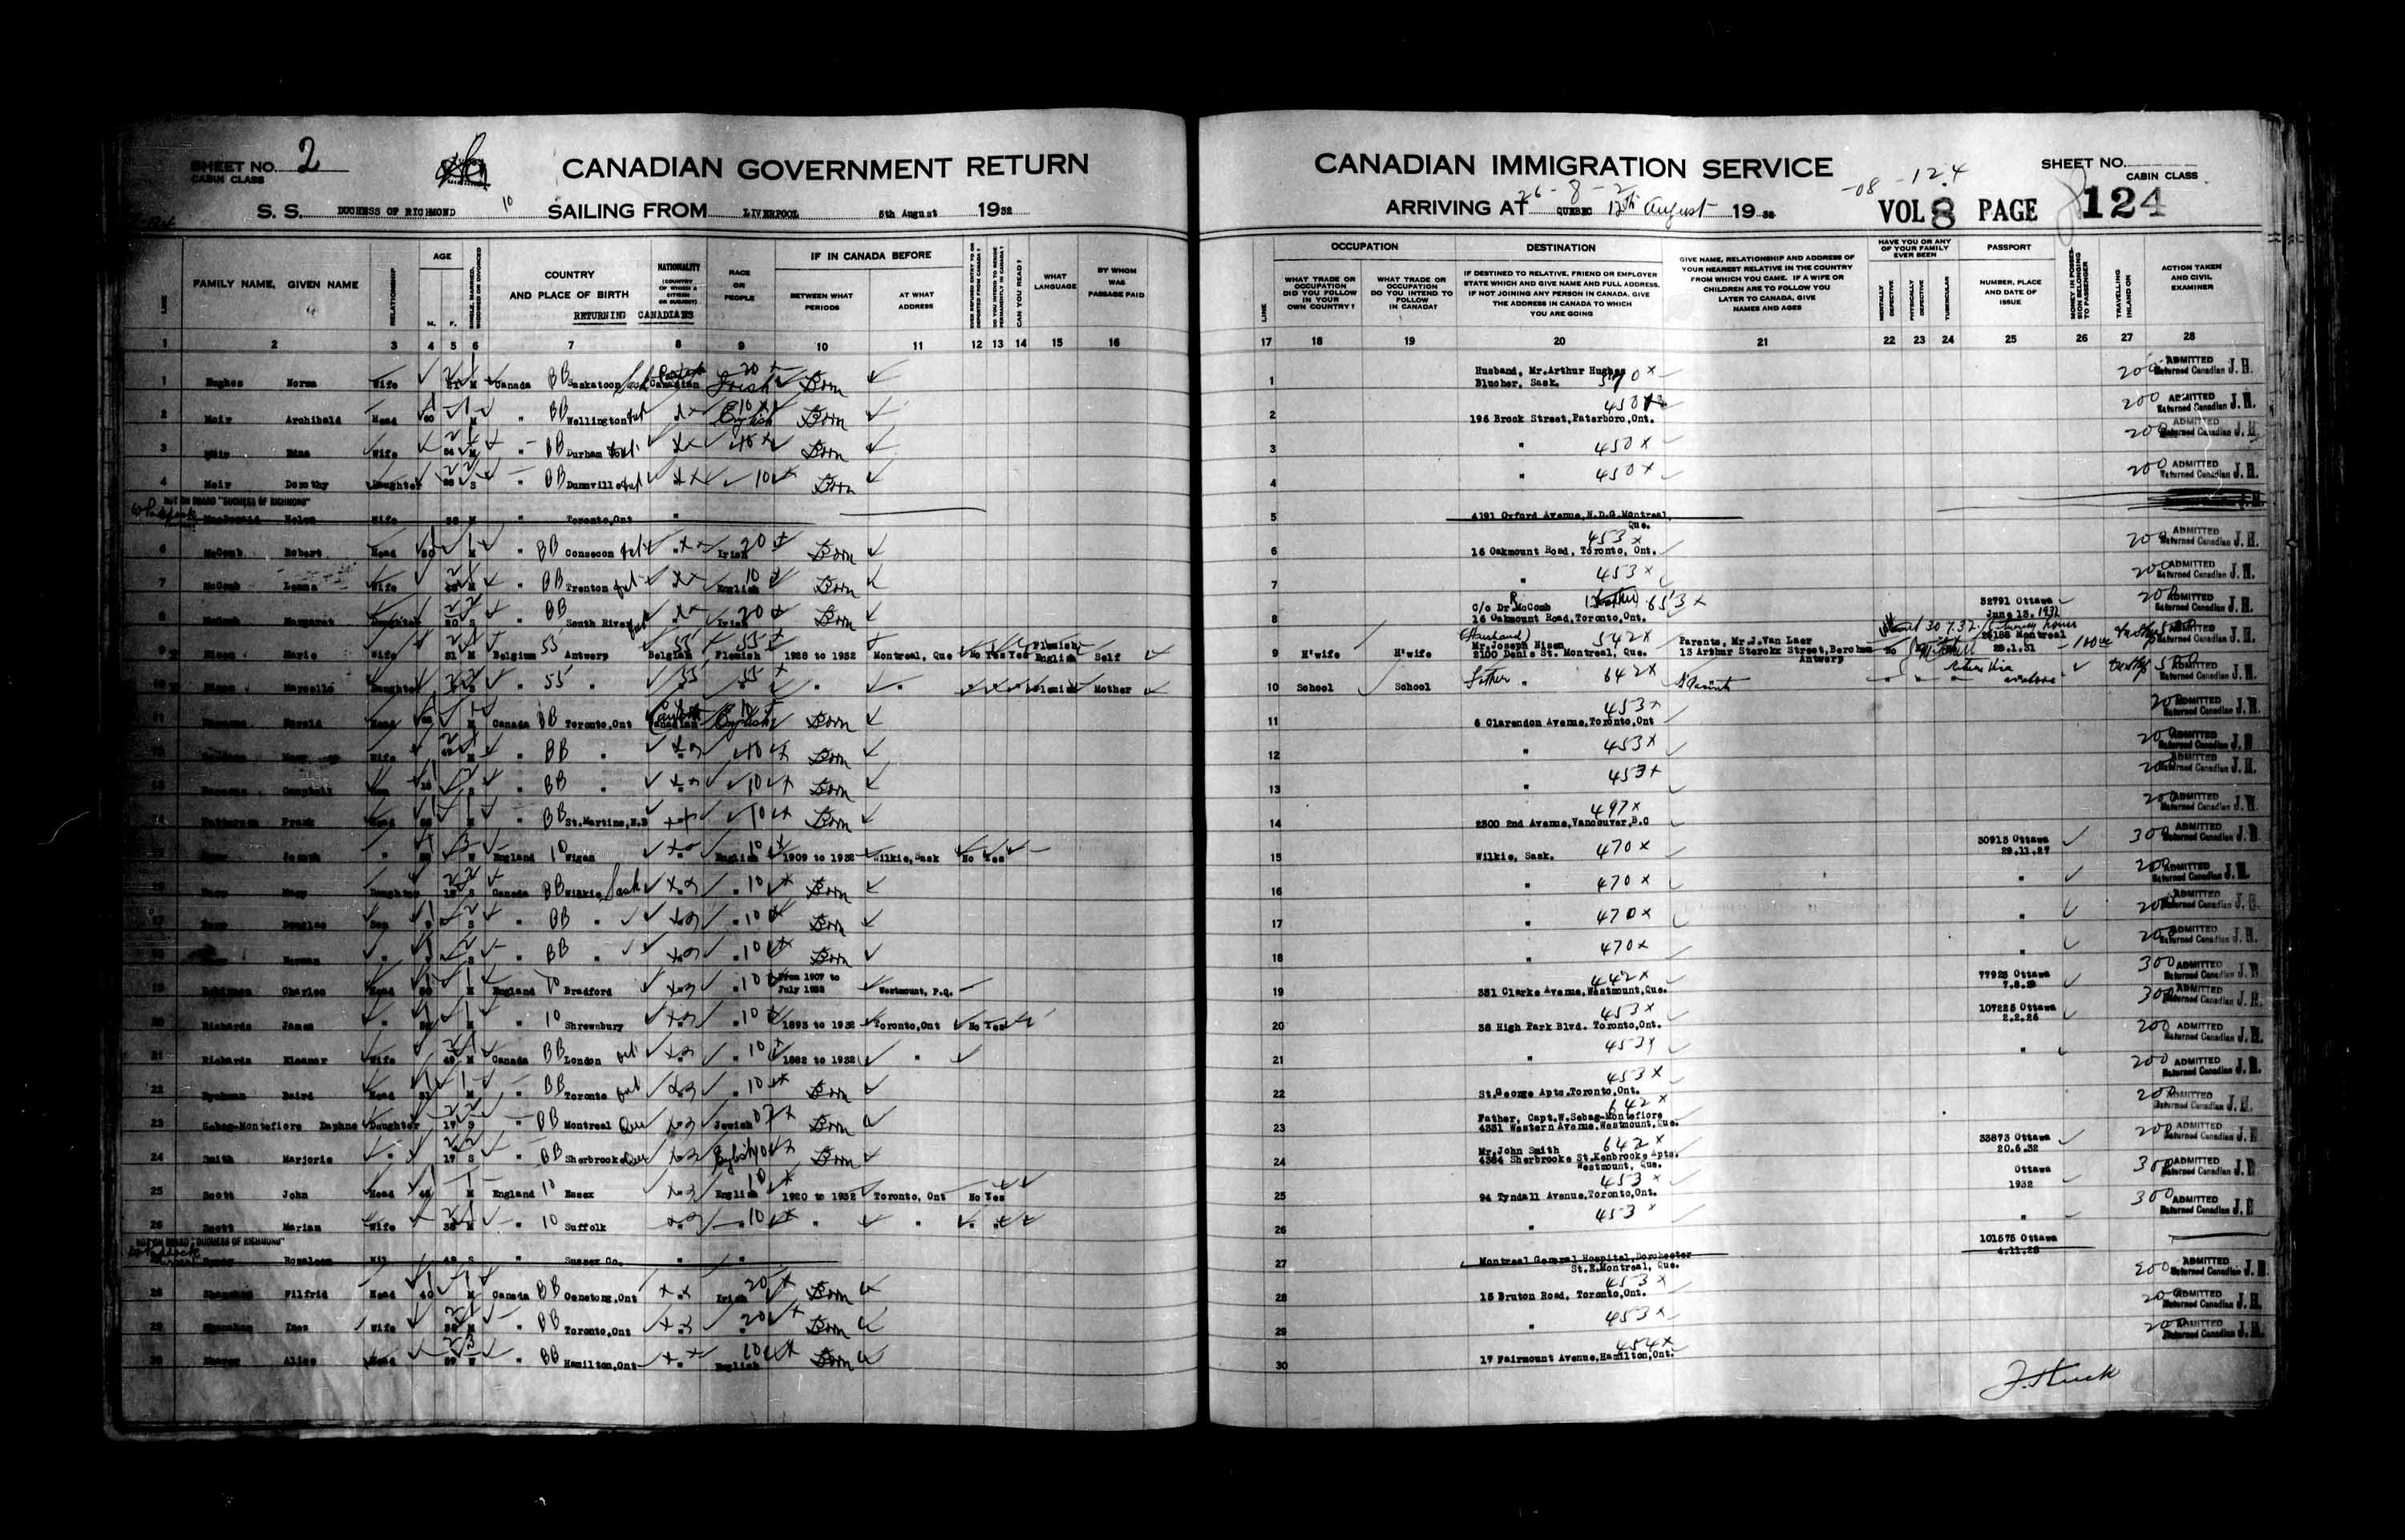 Title: Passenger Lists: Quebec City (1925-1935) - Mikan Number: 134839 - Microform: t-14780